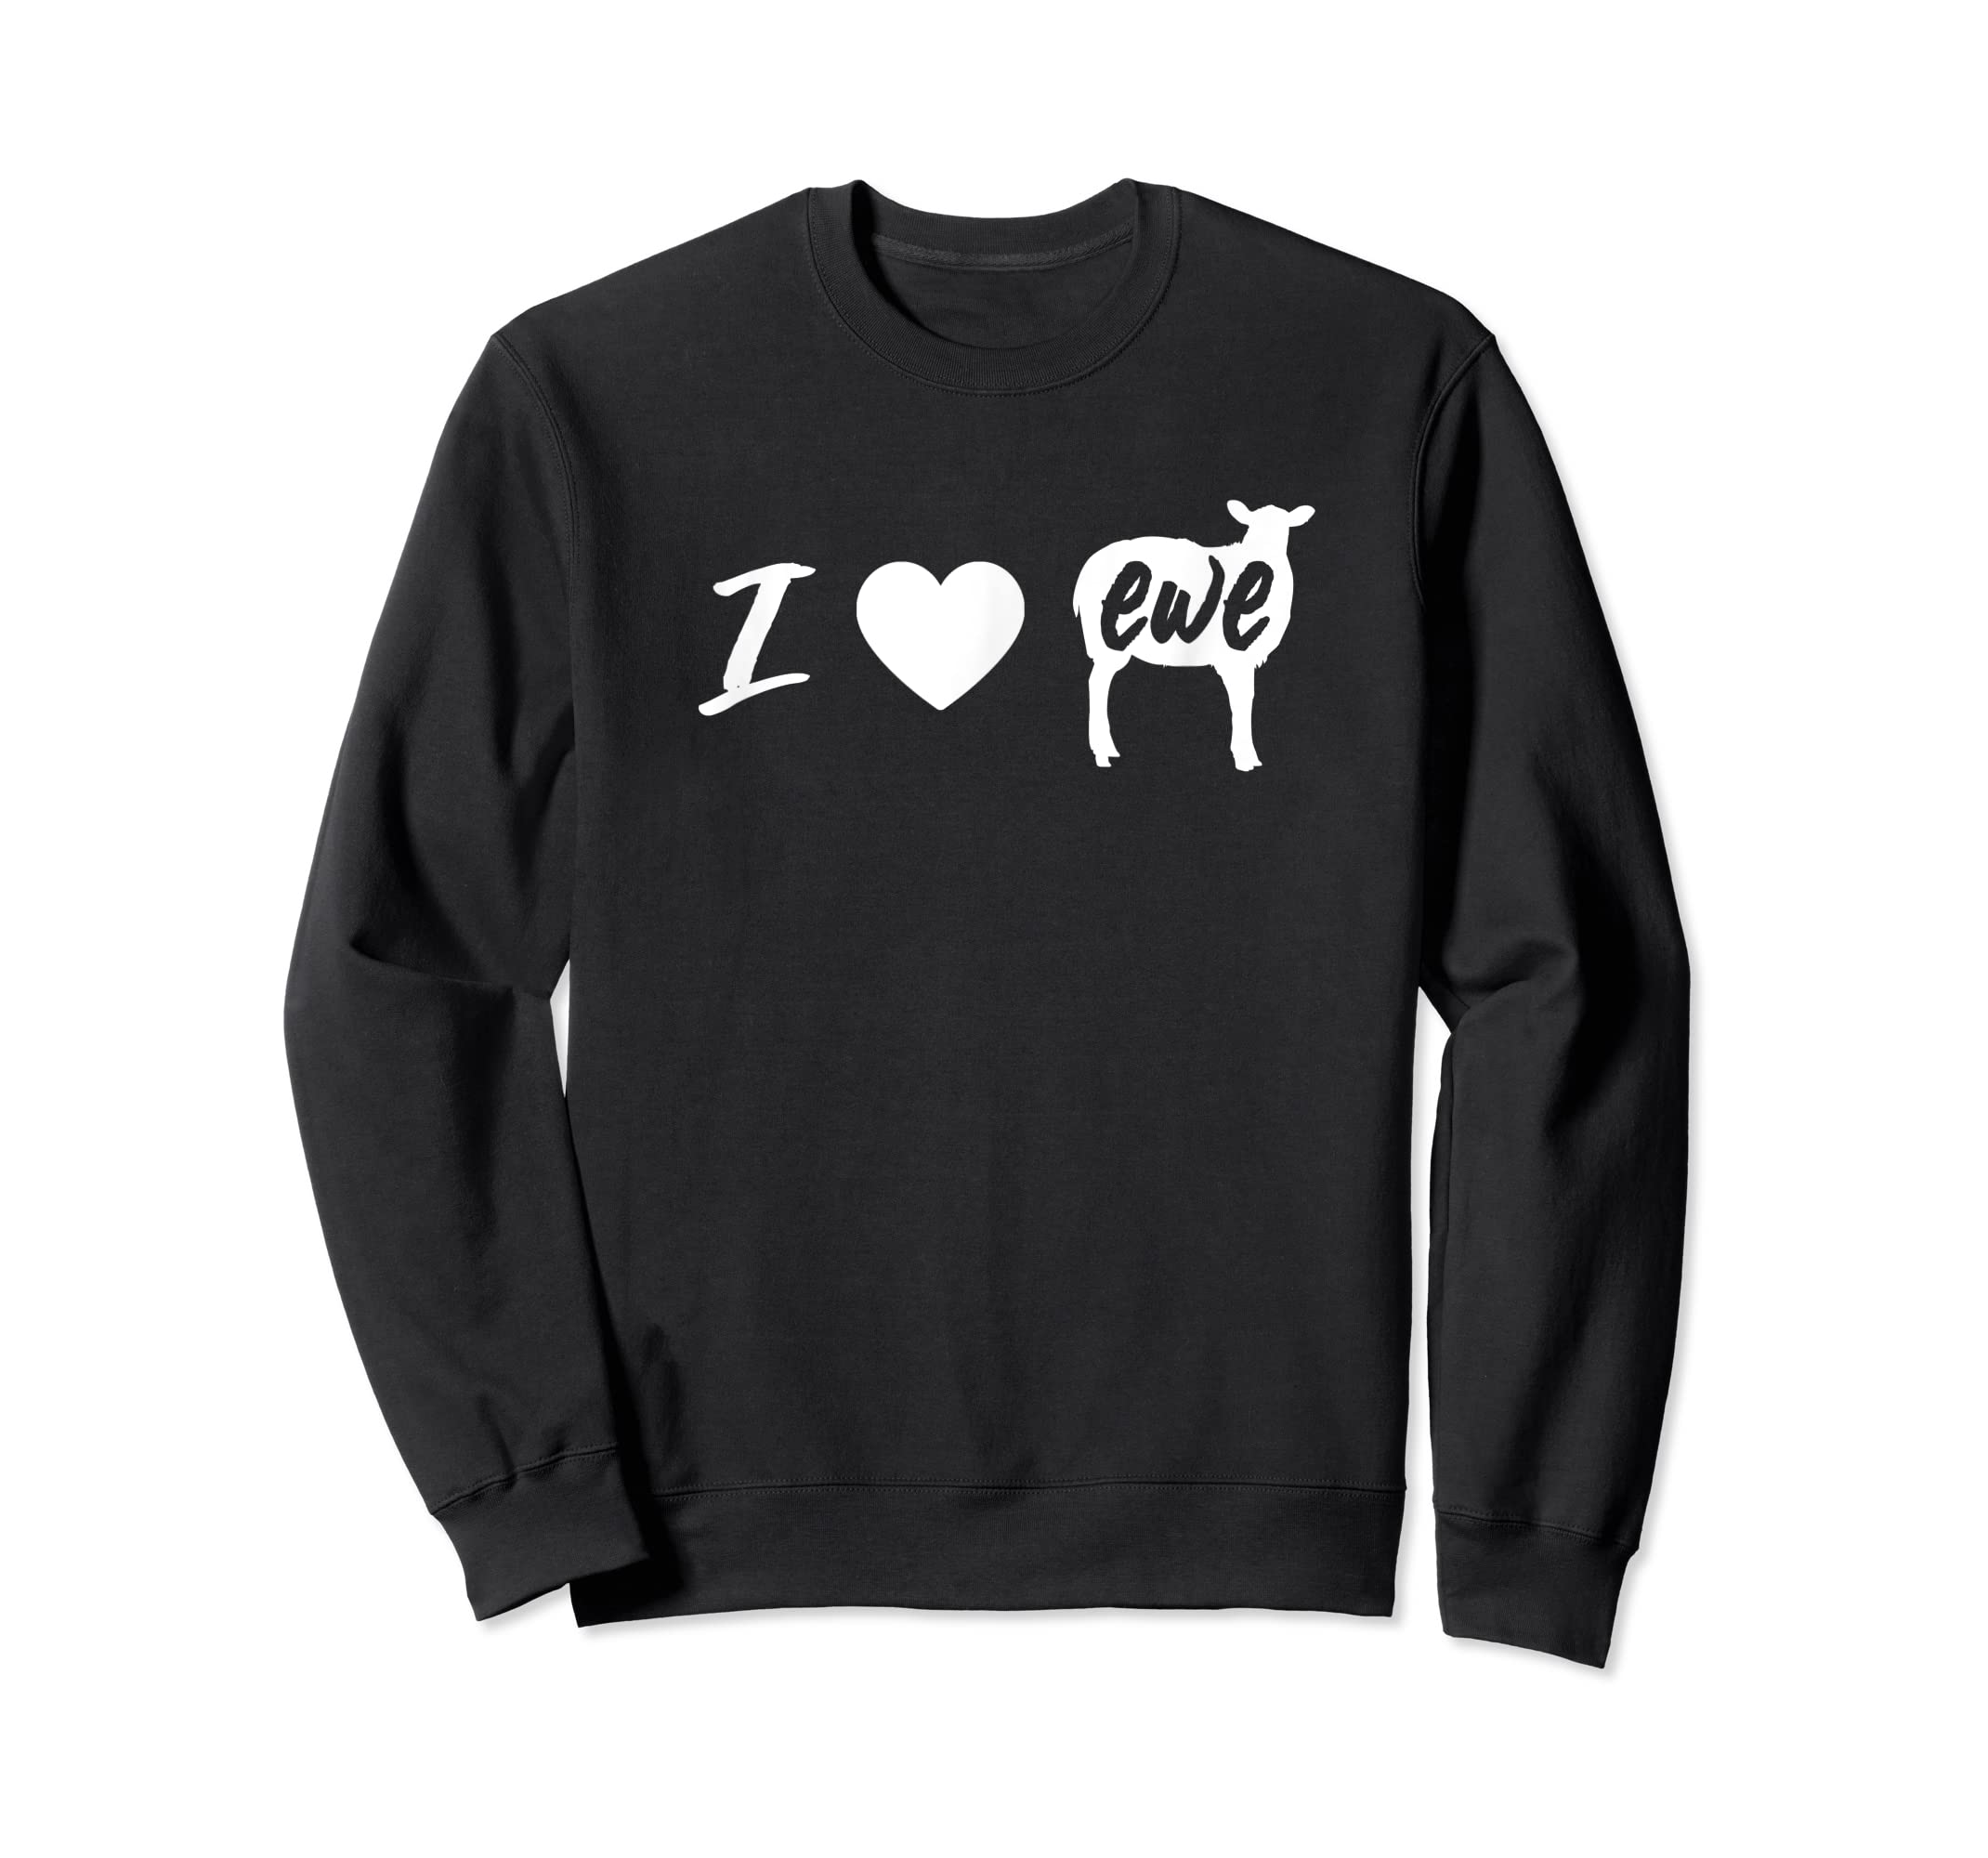 I Love Ewe - I Love You Sheep Pun Shirt-Sweatshirt-Black